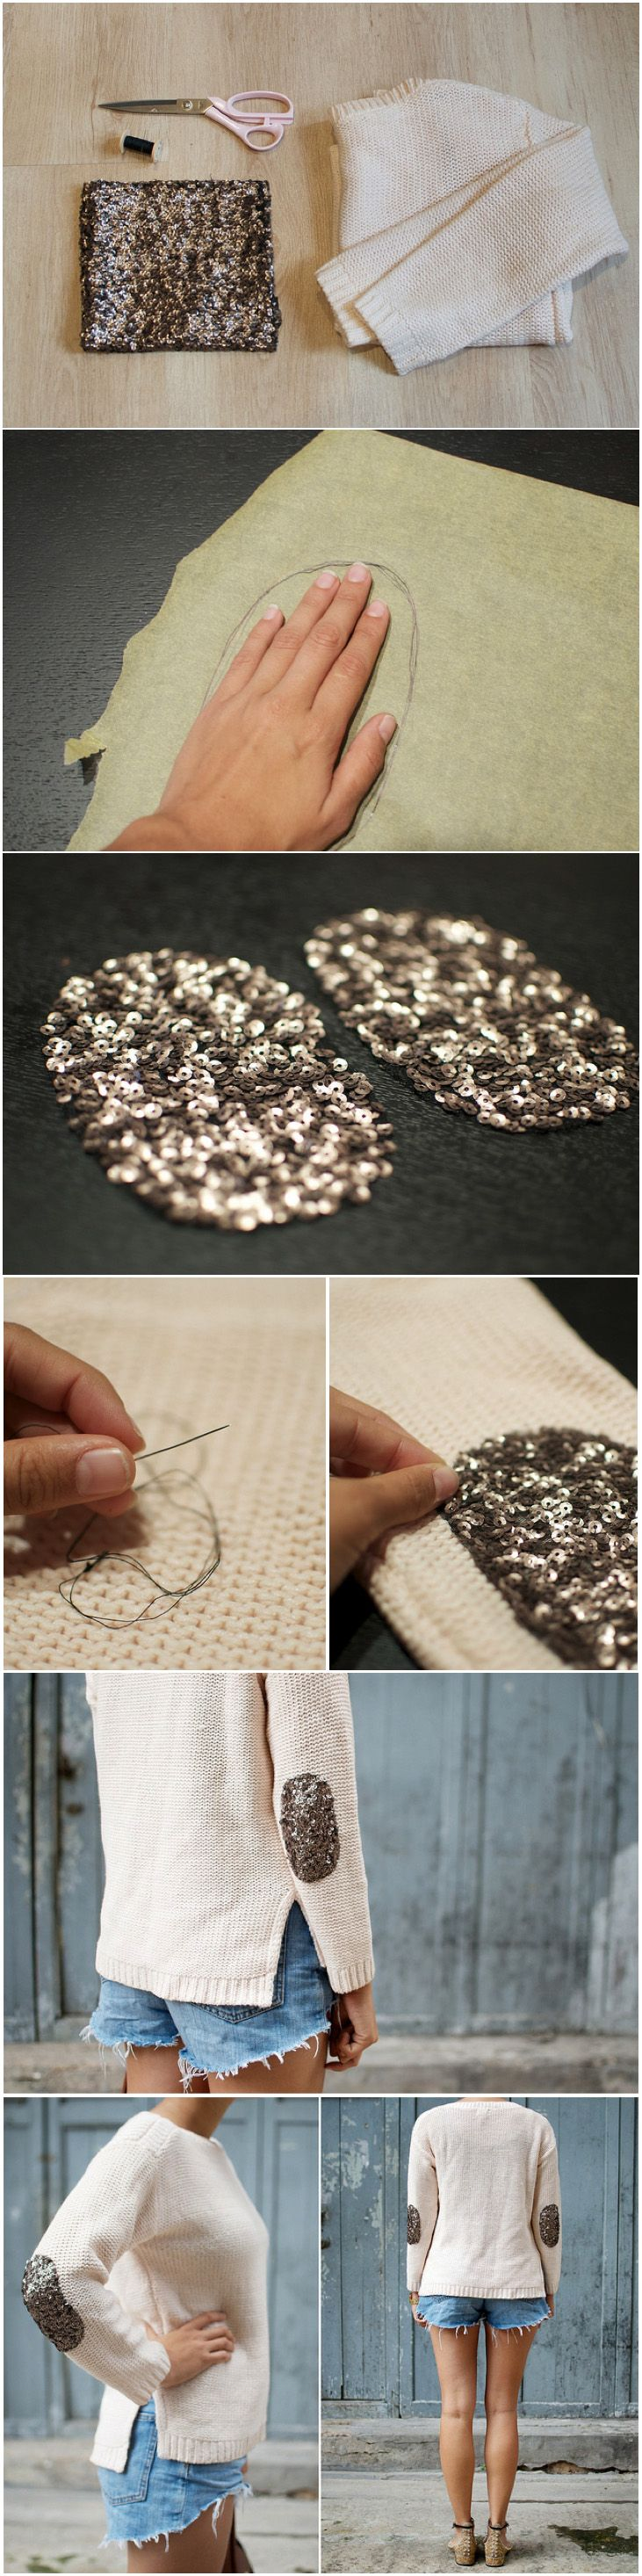 sequin elbow patches - want to try this for shoulders